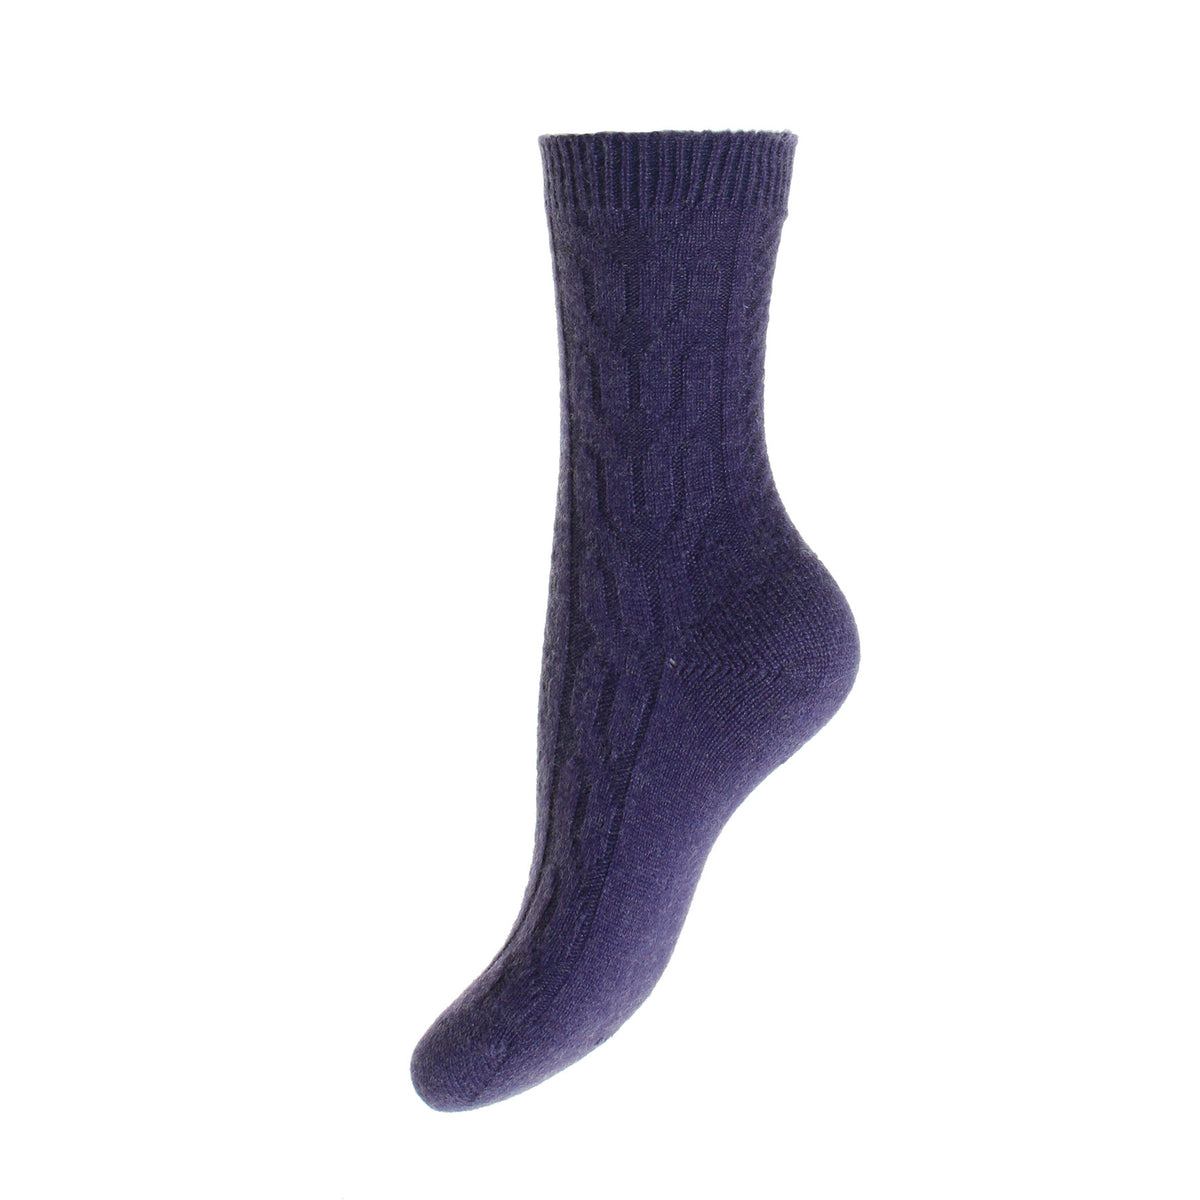 Purple Cable Knit Ladies Cashmere Socks | Ankle Sock | buy now at The Cashmere Choice London